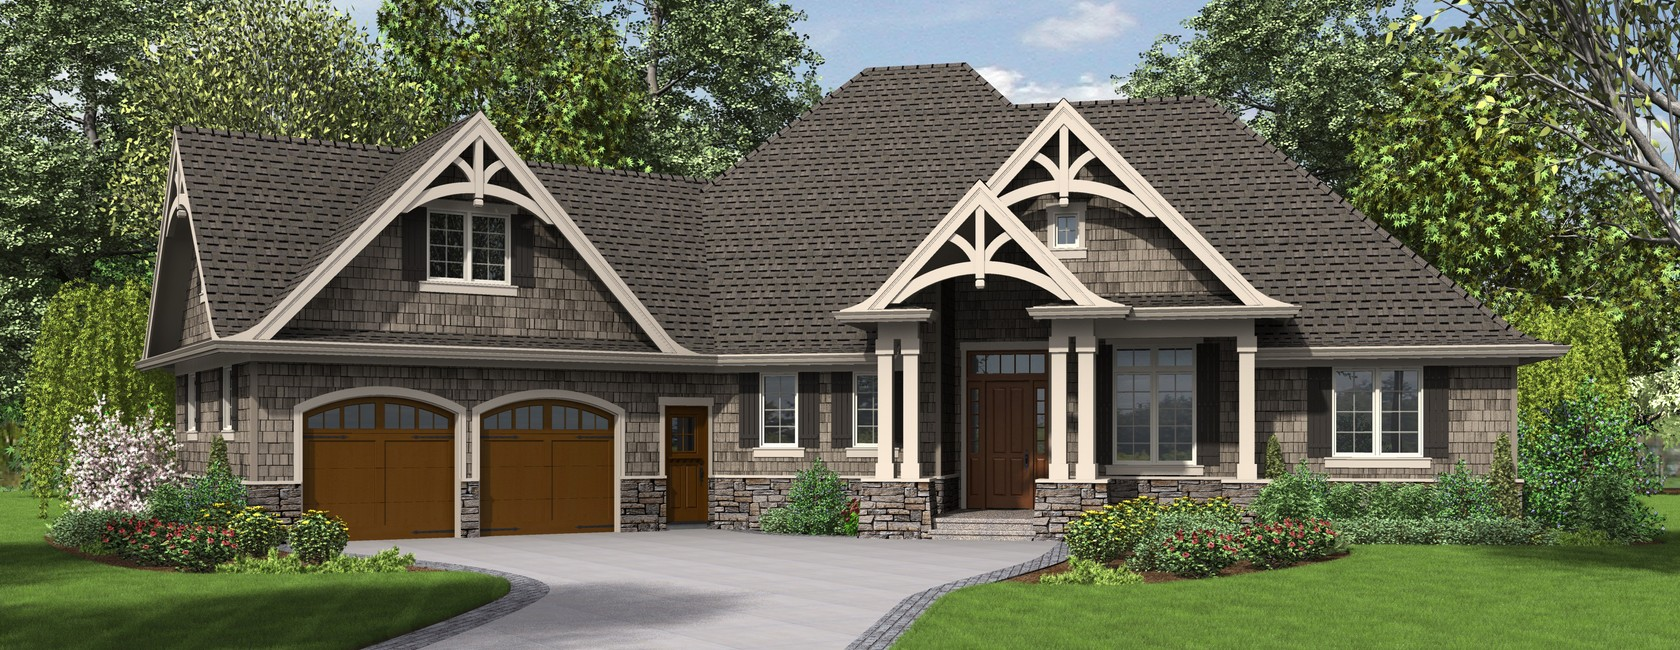 The ripley single story craftsman house plan with tons of for Single story craftsman homes